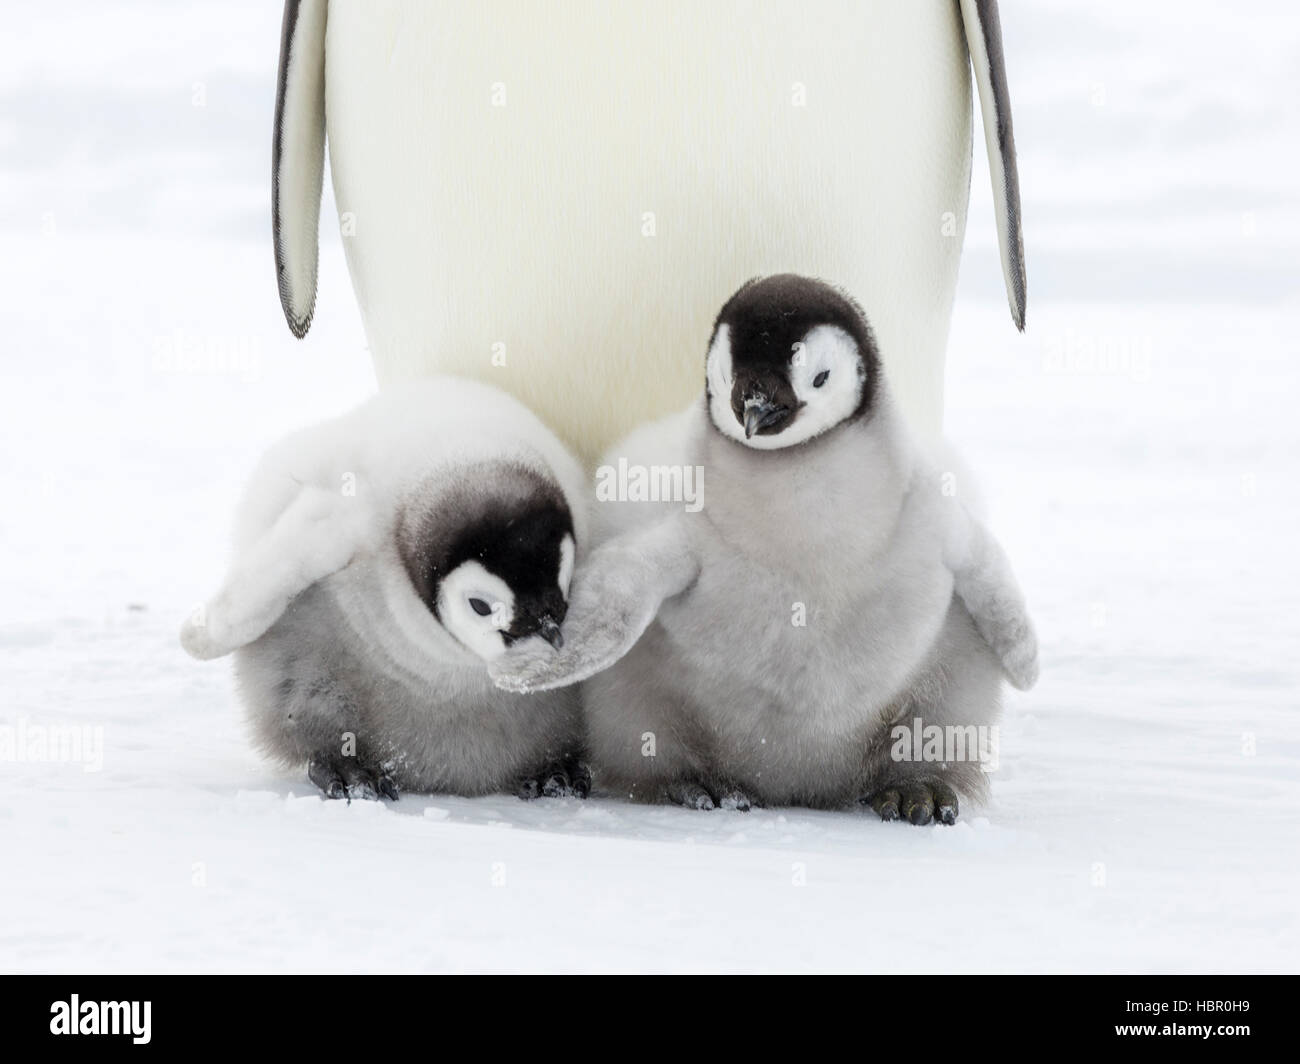 An Emperor Penguin chick takes a bite on the wing of a fellow chick - Stock Image